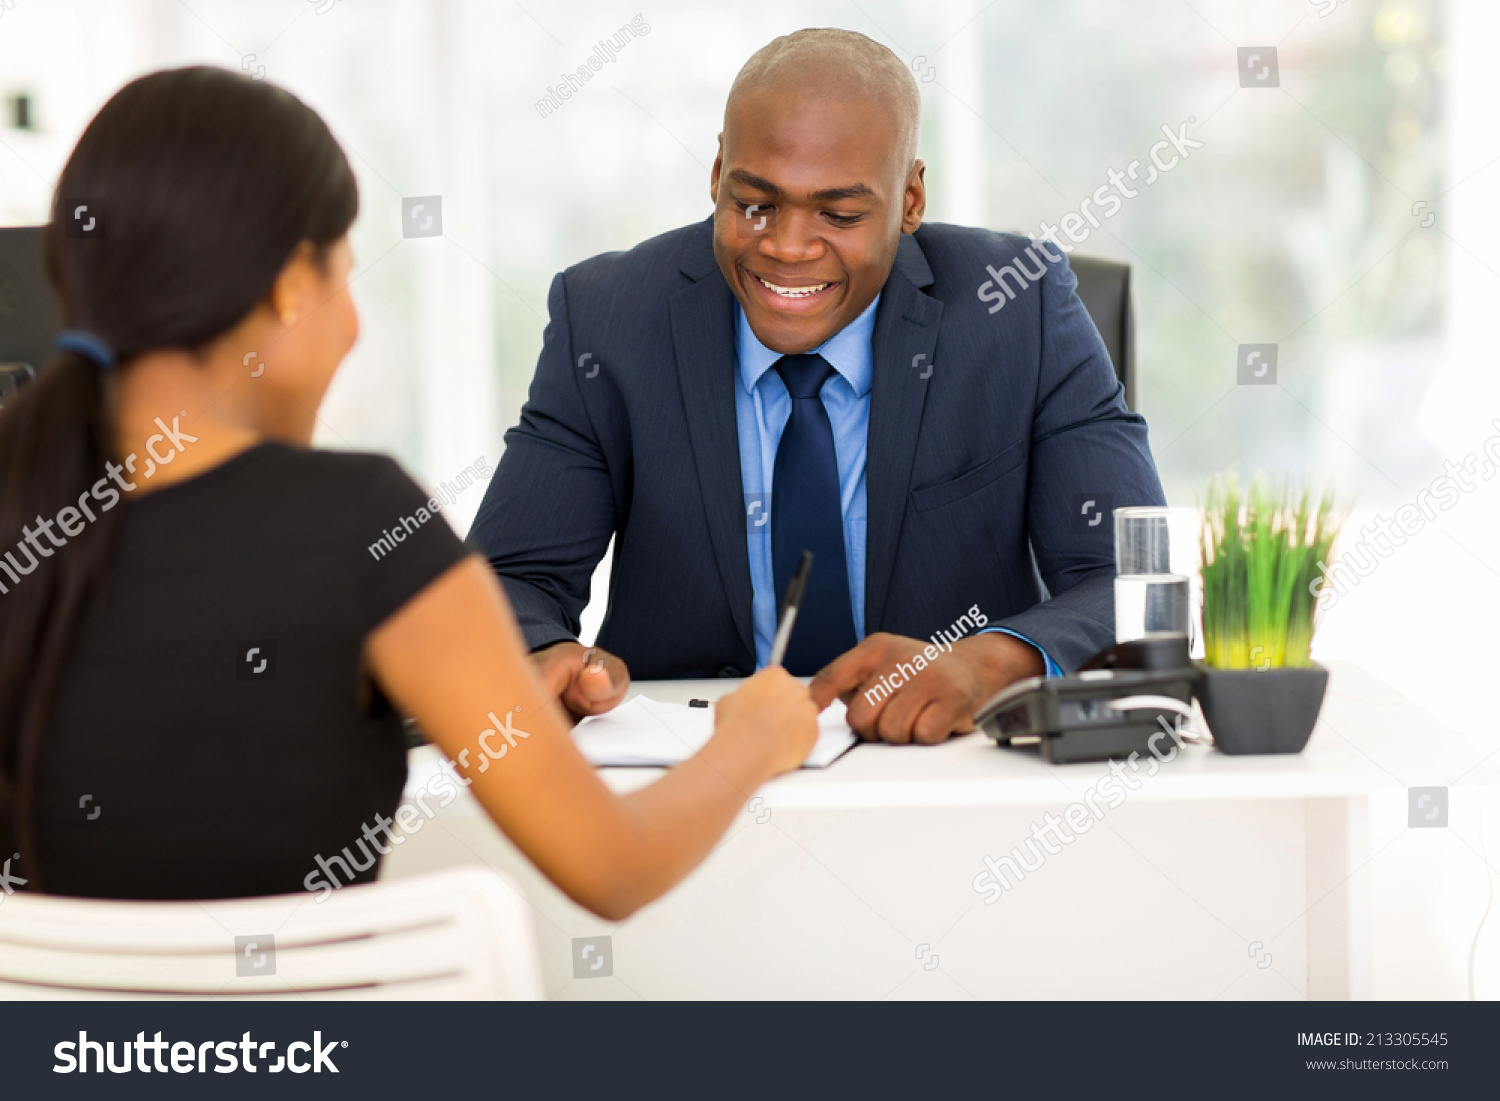 The Contract Of Employment Is Accordingly An Essential Component Of The  Employment Relationship And Careful Consideration Should Be Given To The  Drafting Of ...